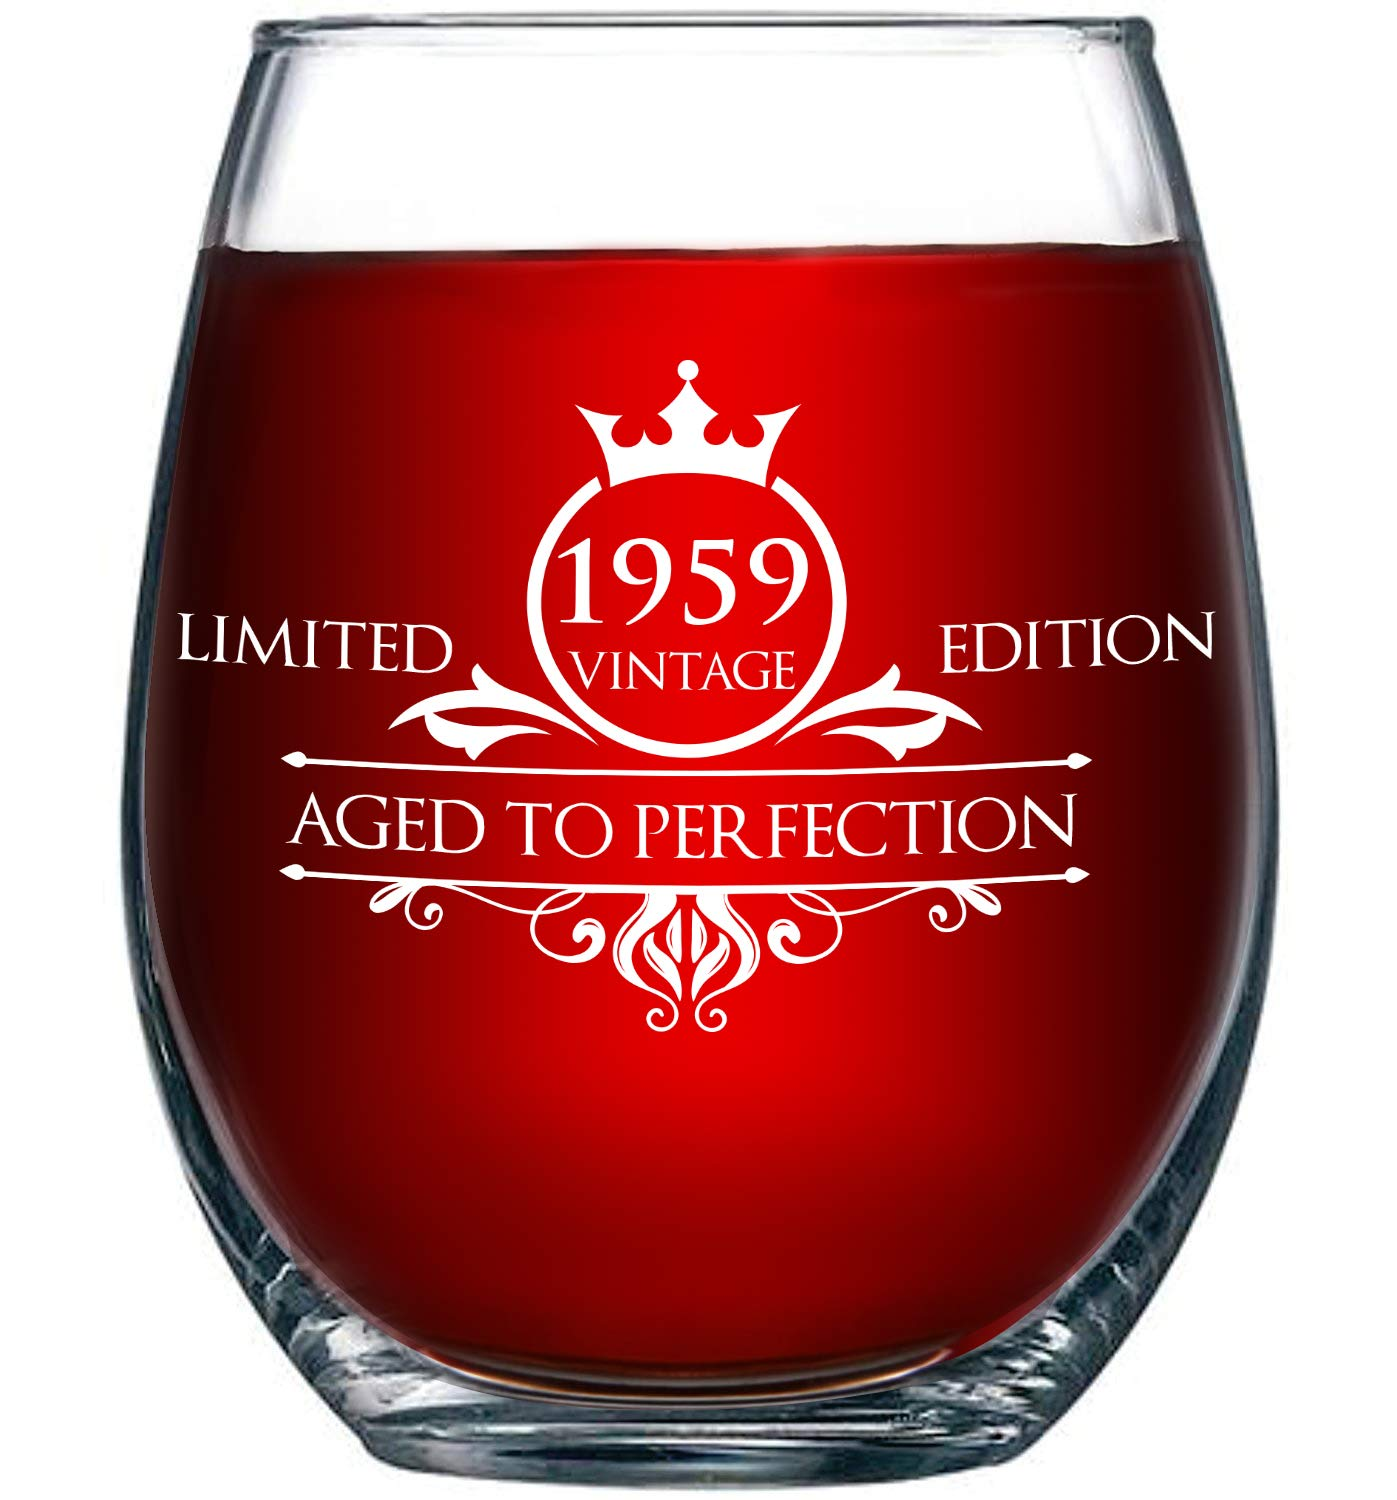 1959 60th Birthday Gifts for Women and Men Wine Glass - Funny Vintage Aged To Perfection - Anniversary Gift Ideas for Mom Dad Husband Wife - 60 Year Old Party Supplies Decorations for Him, Her - 15oz